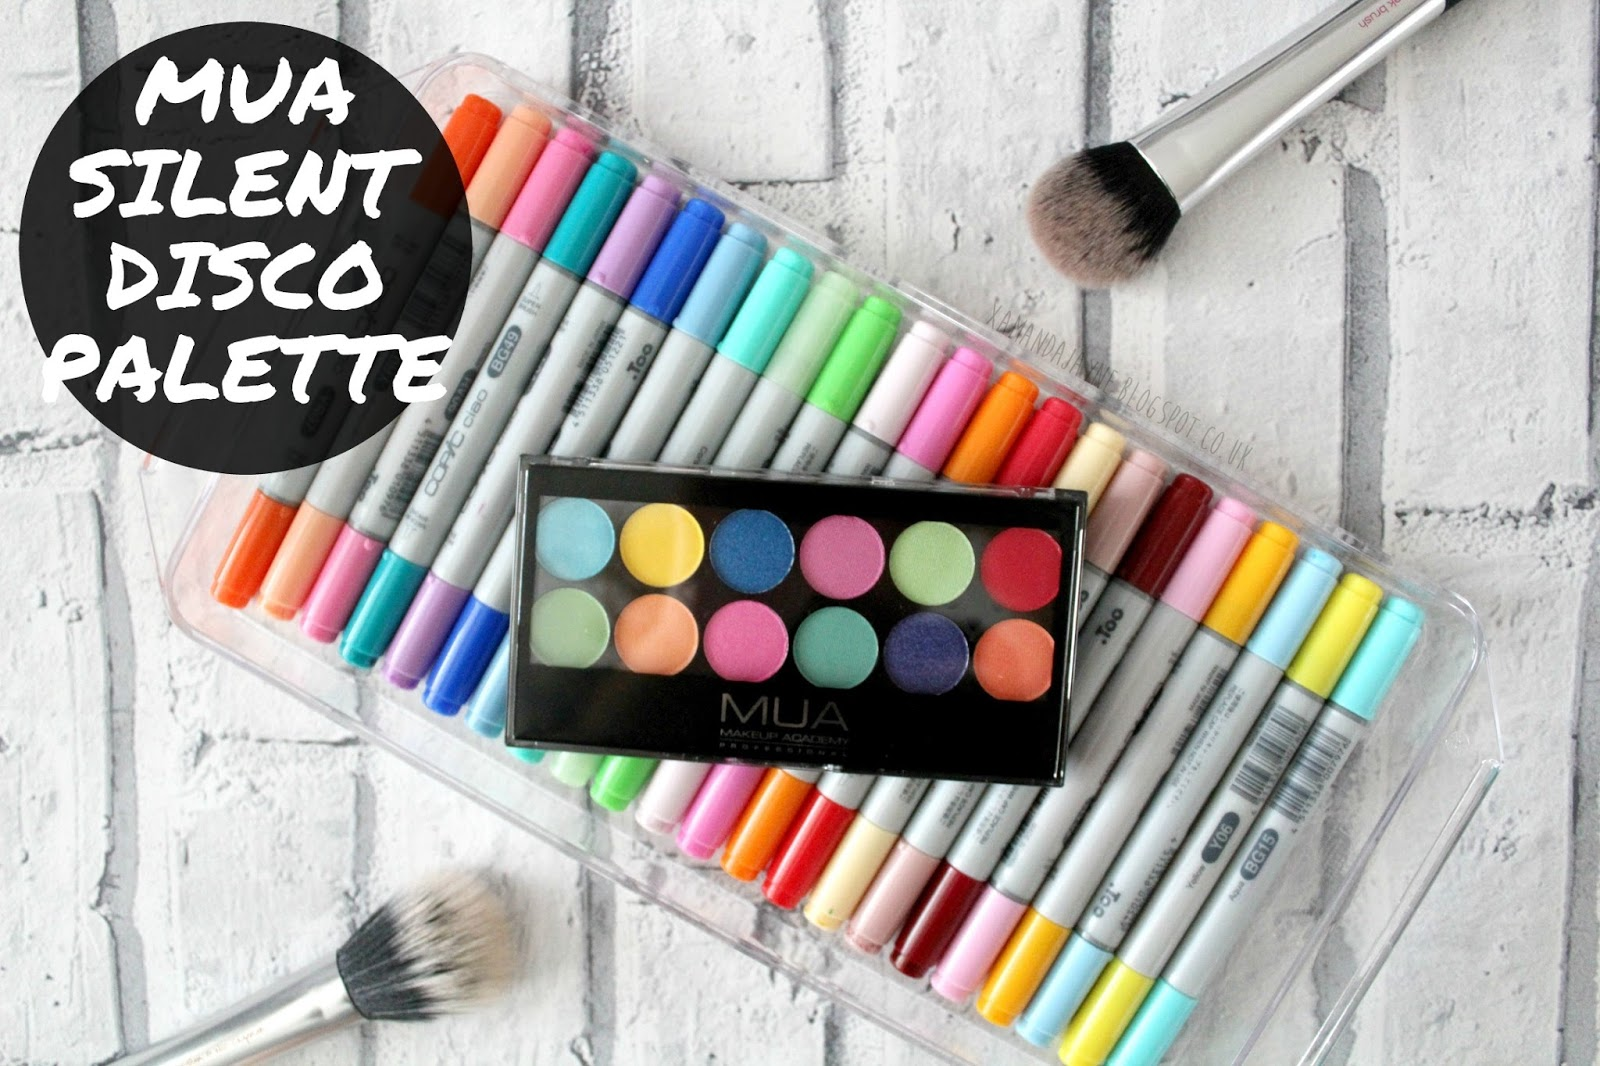 mua cosmetics makeup academy beauty eyeshadow palette silent disco 12 colour bright bold colourful drugstore cheap affordable